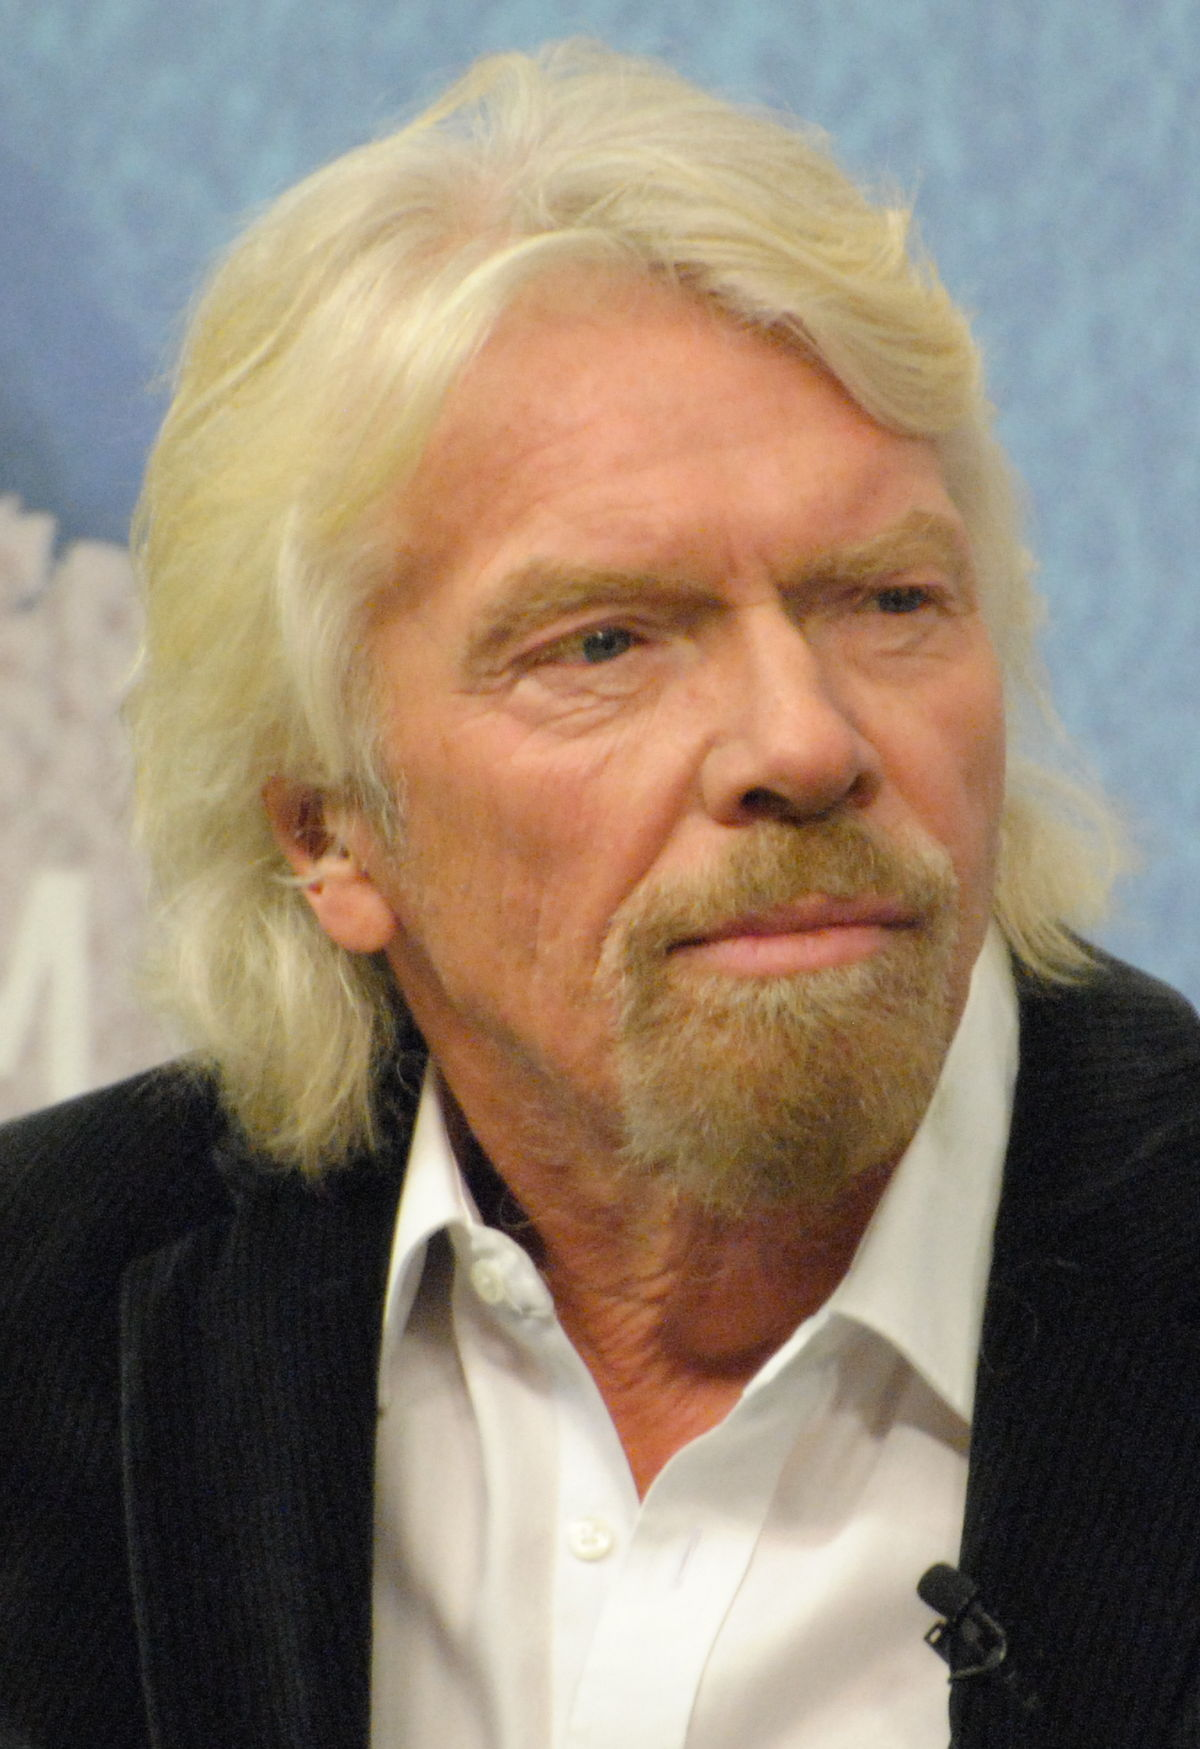 Richard Branson - Wikipedia